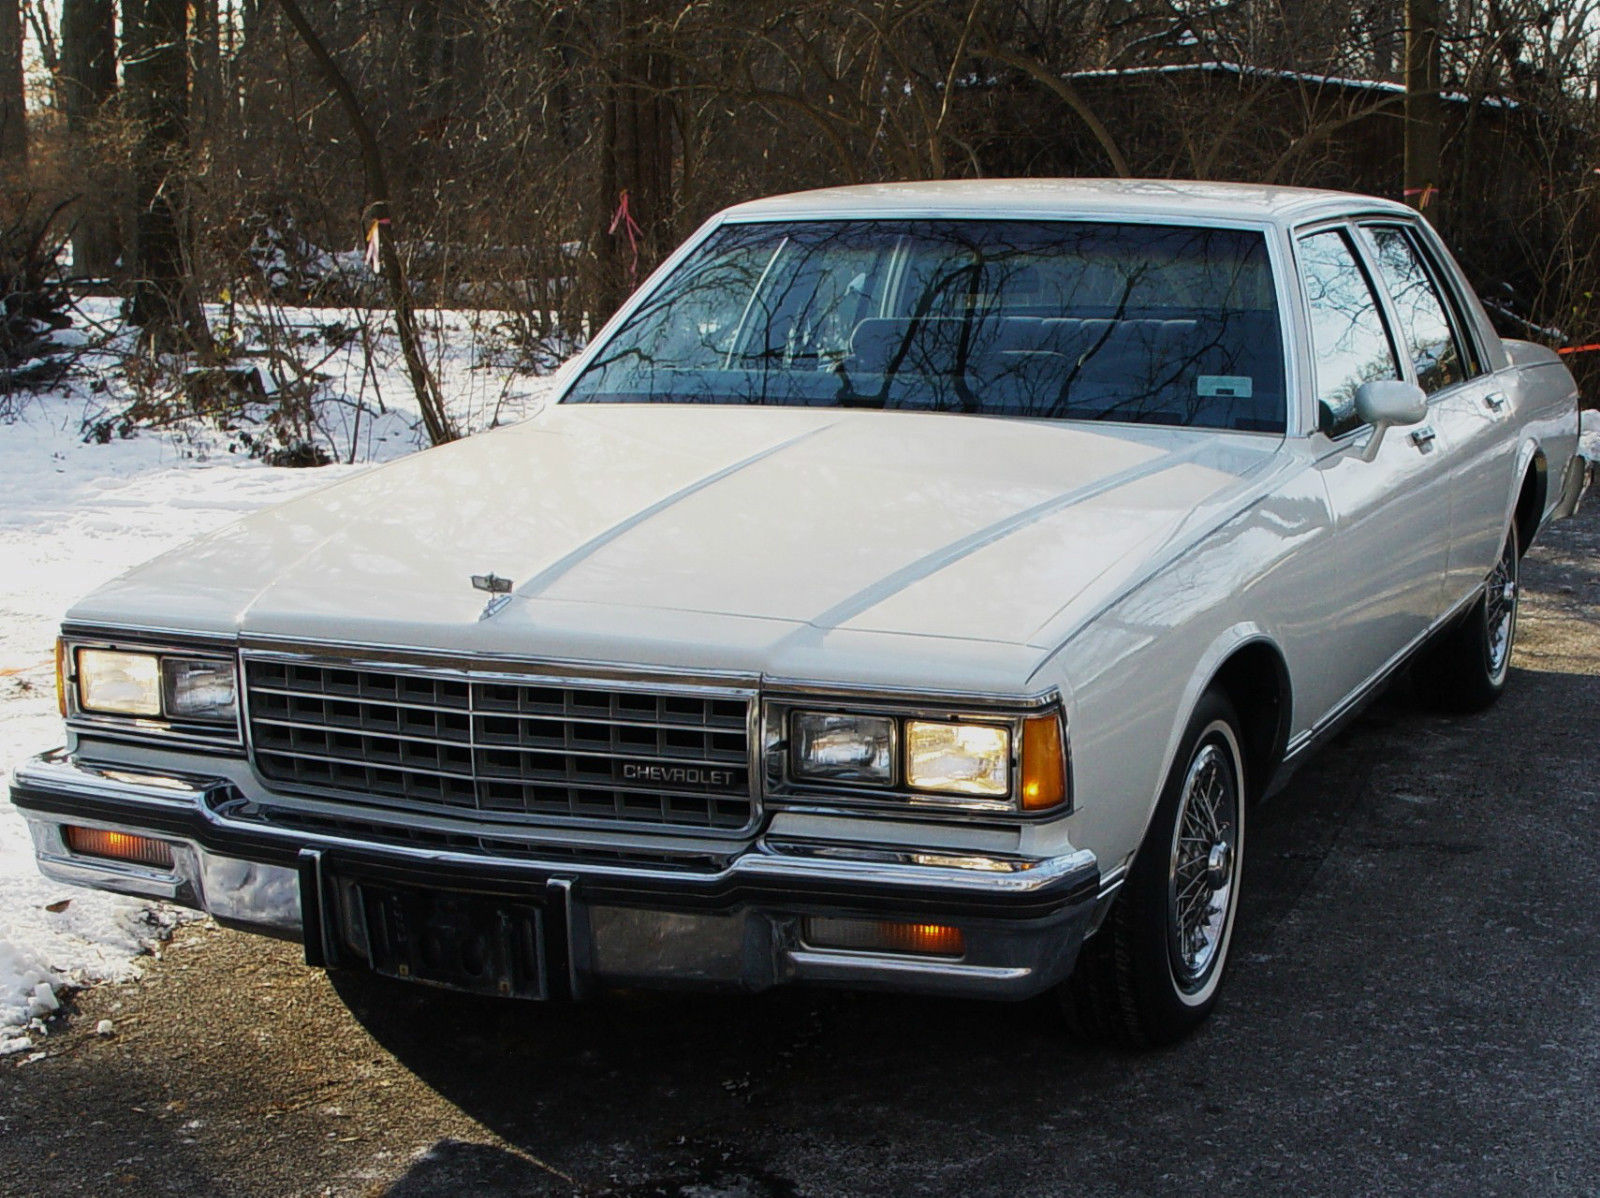 1984 chevy caprice classic white low miles amazing. Black Bedroom Furniture Sets. Home Design Ideas